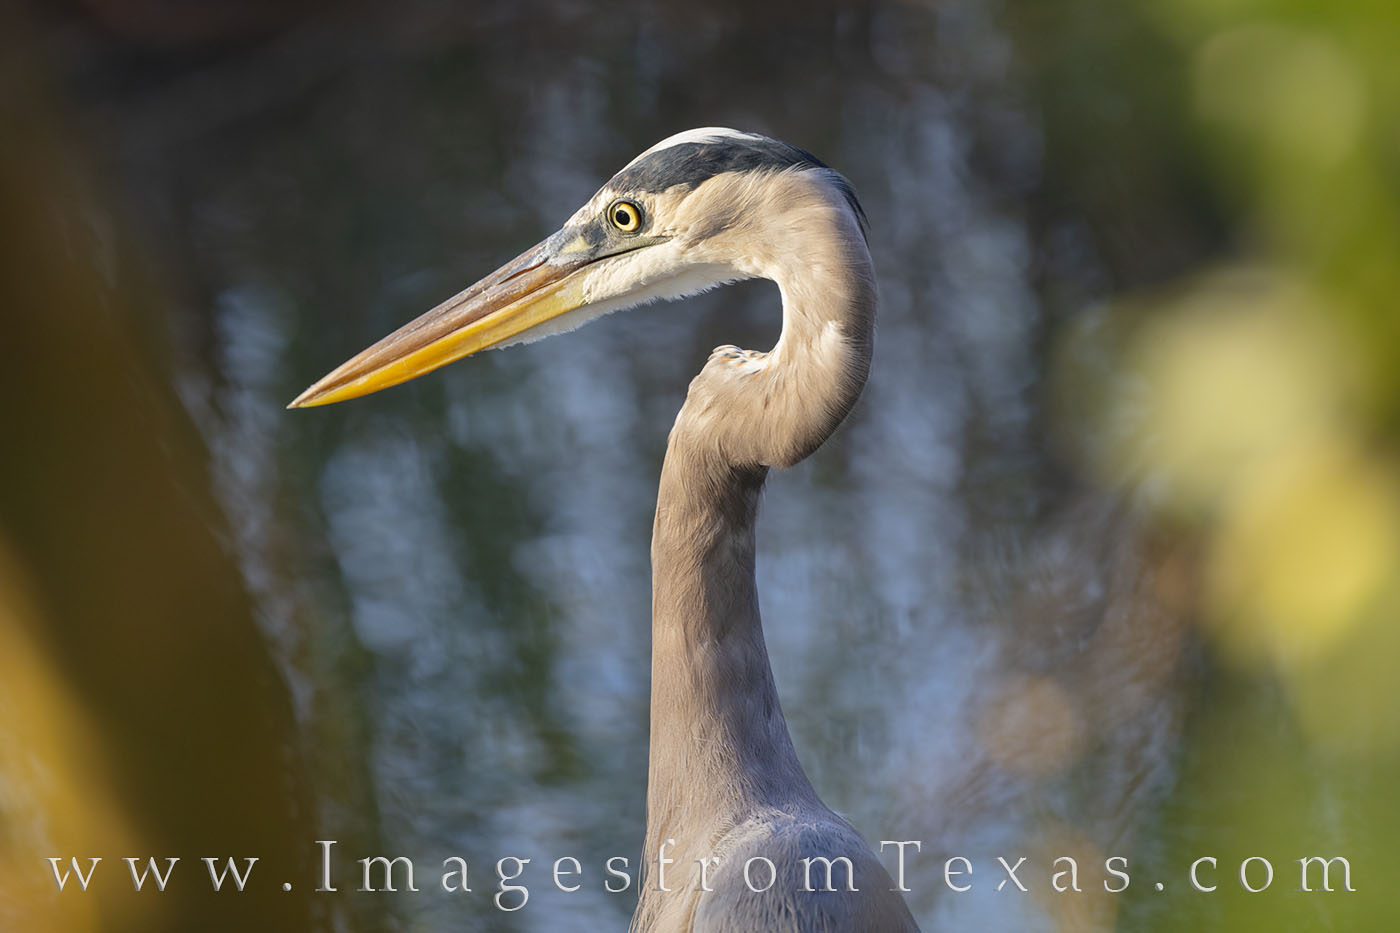 blue heron, heron, south padre, bird, south padre island, birds, texas coast, south texas, photo